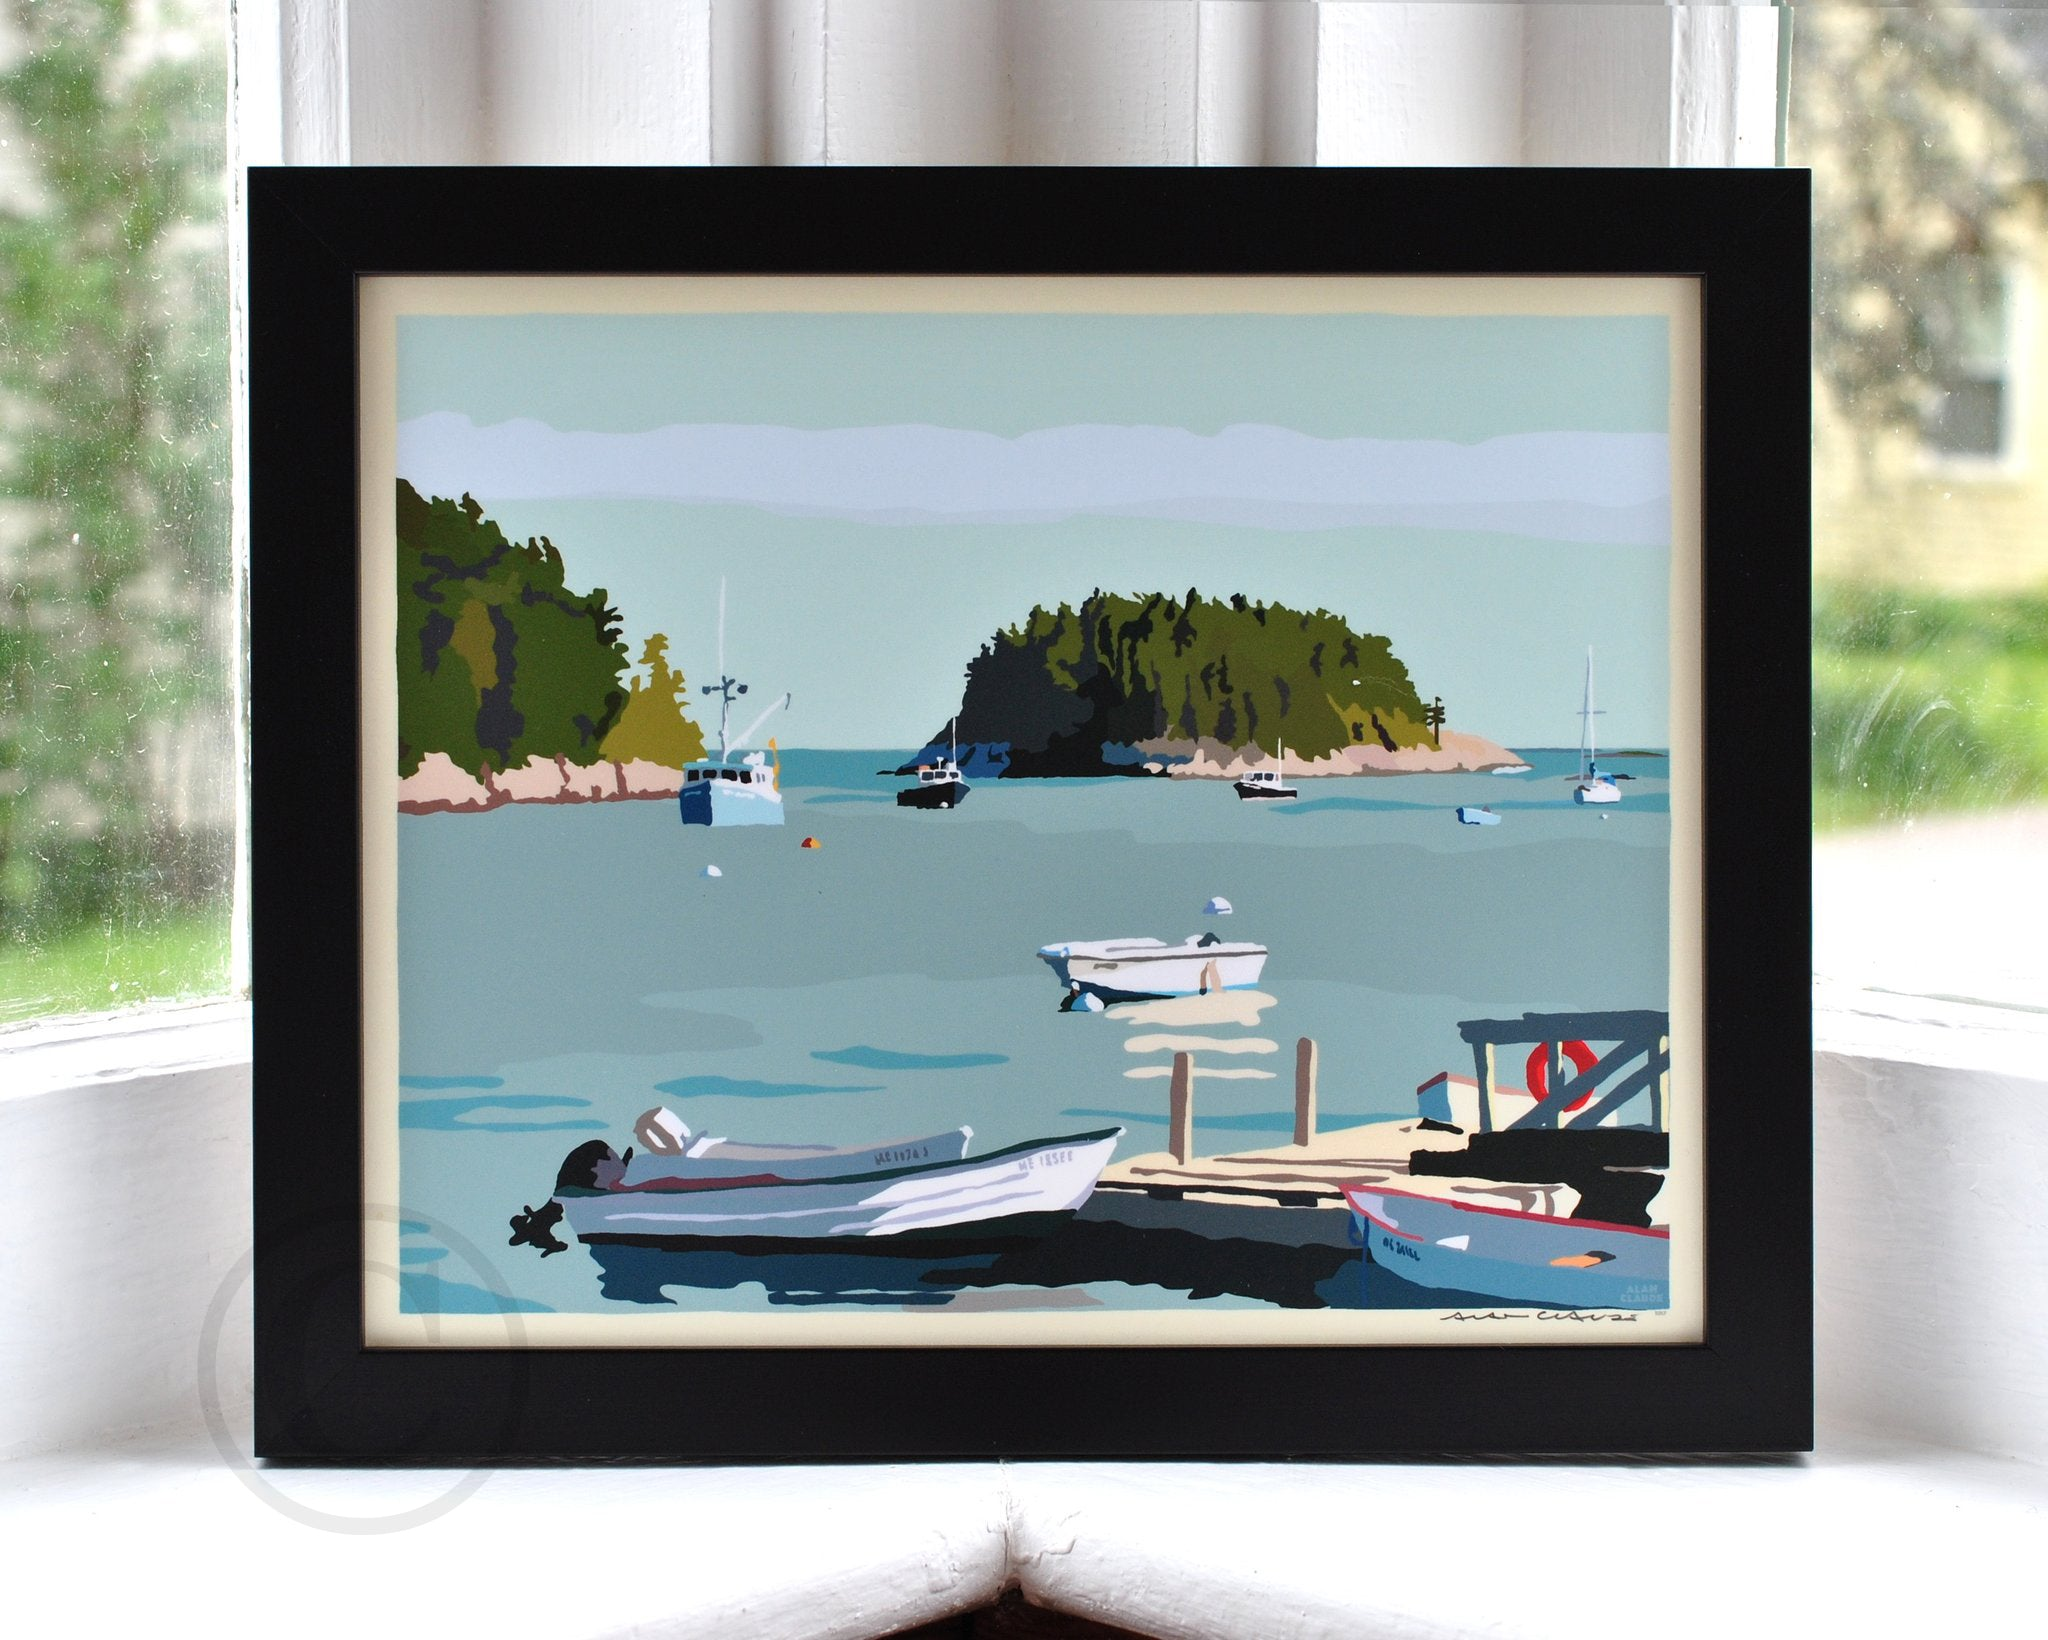 "I Am An Island - horizontal format - Art Print 8"" x 10"" Framed Wall Poster - Maine"